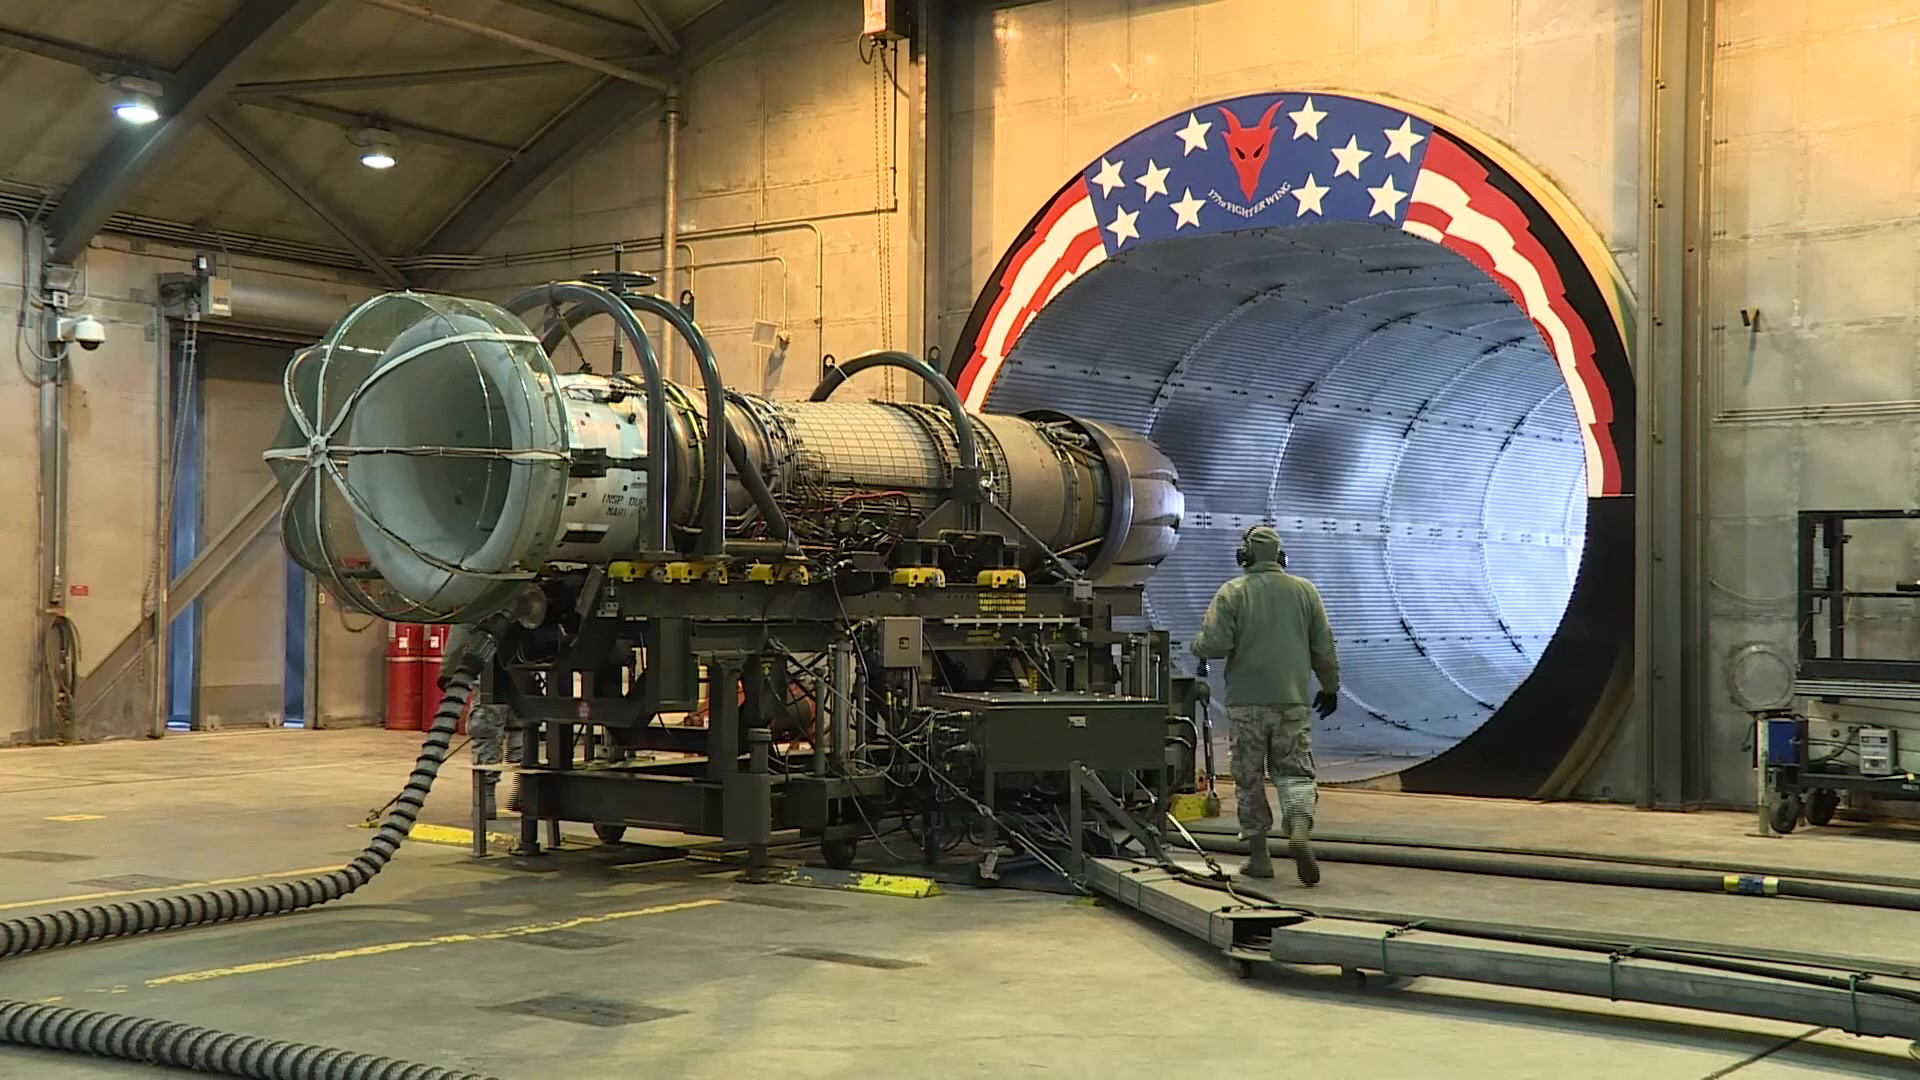 DVIDS Video 177th Fighter Wing gas turbine engine testing